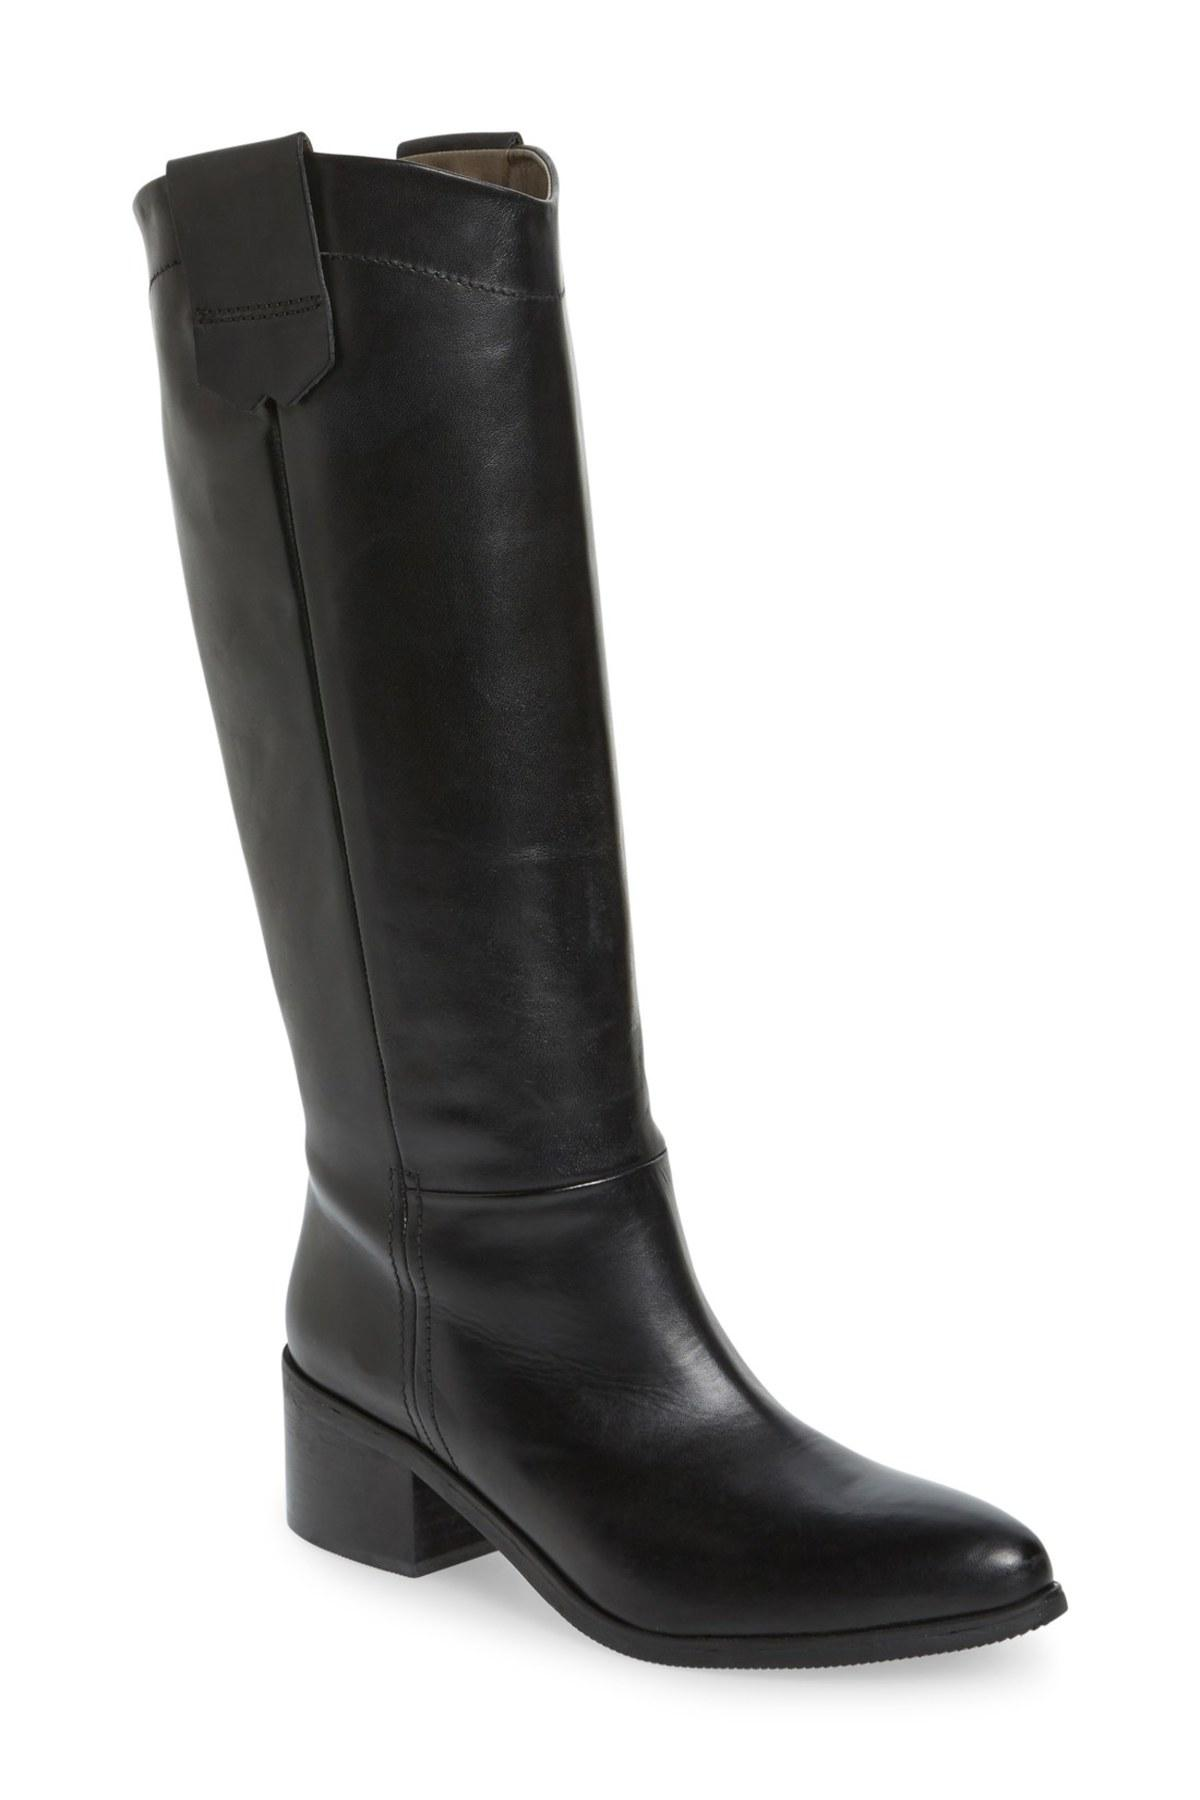 lyst bella vita gia tall riding boot in black. Black Bedroom Furniture Sets. Home Design Ideas